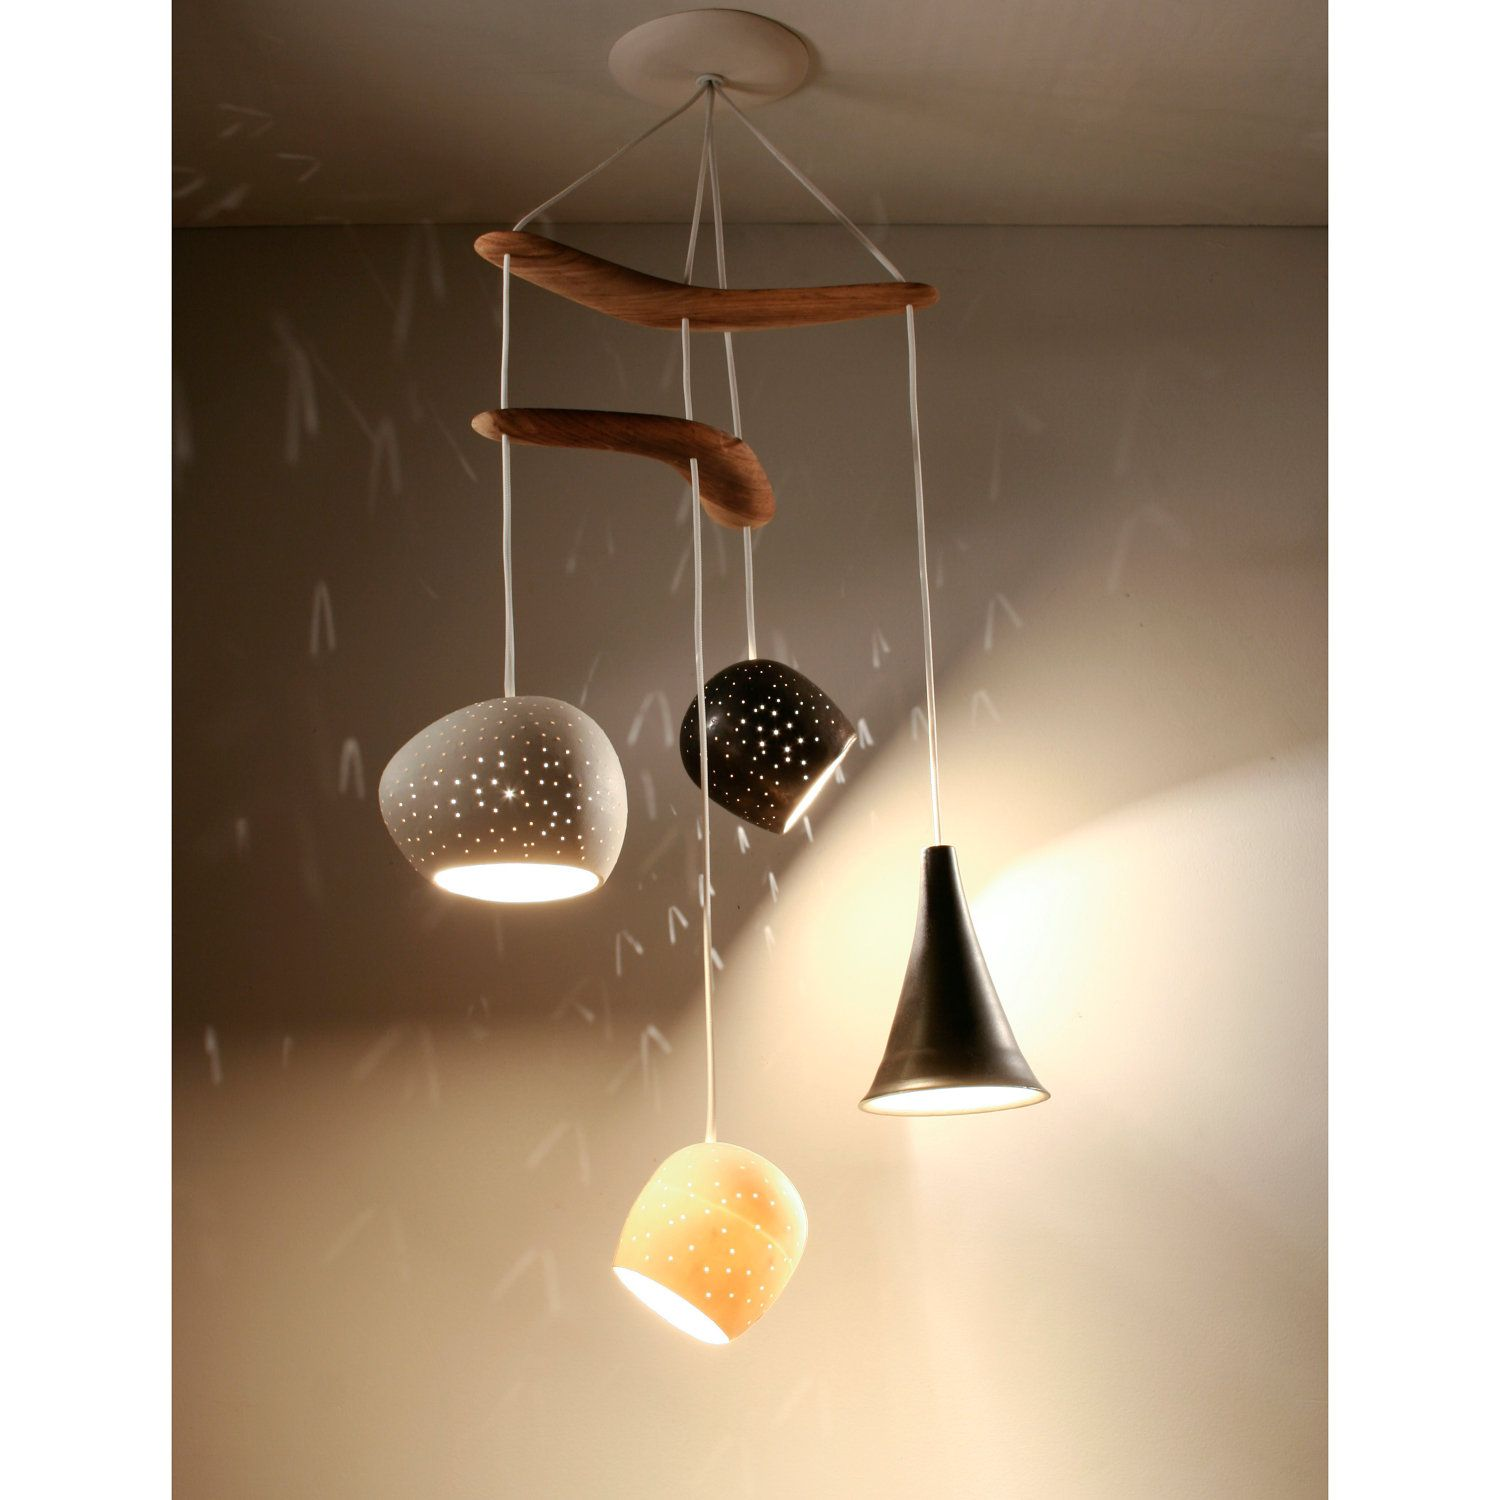 Chandelier Lighting: Claylight Boomerang Miro - LED or Xenon Bulbs ... for Clay Lamp Design  55dqh